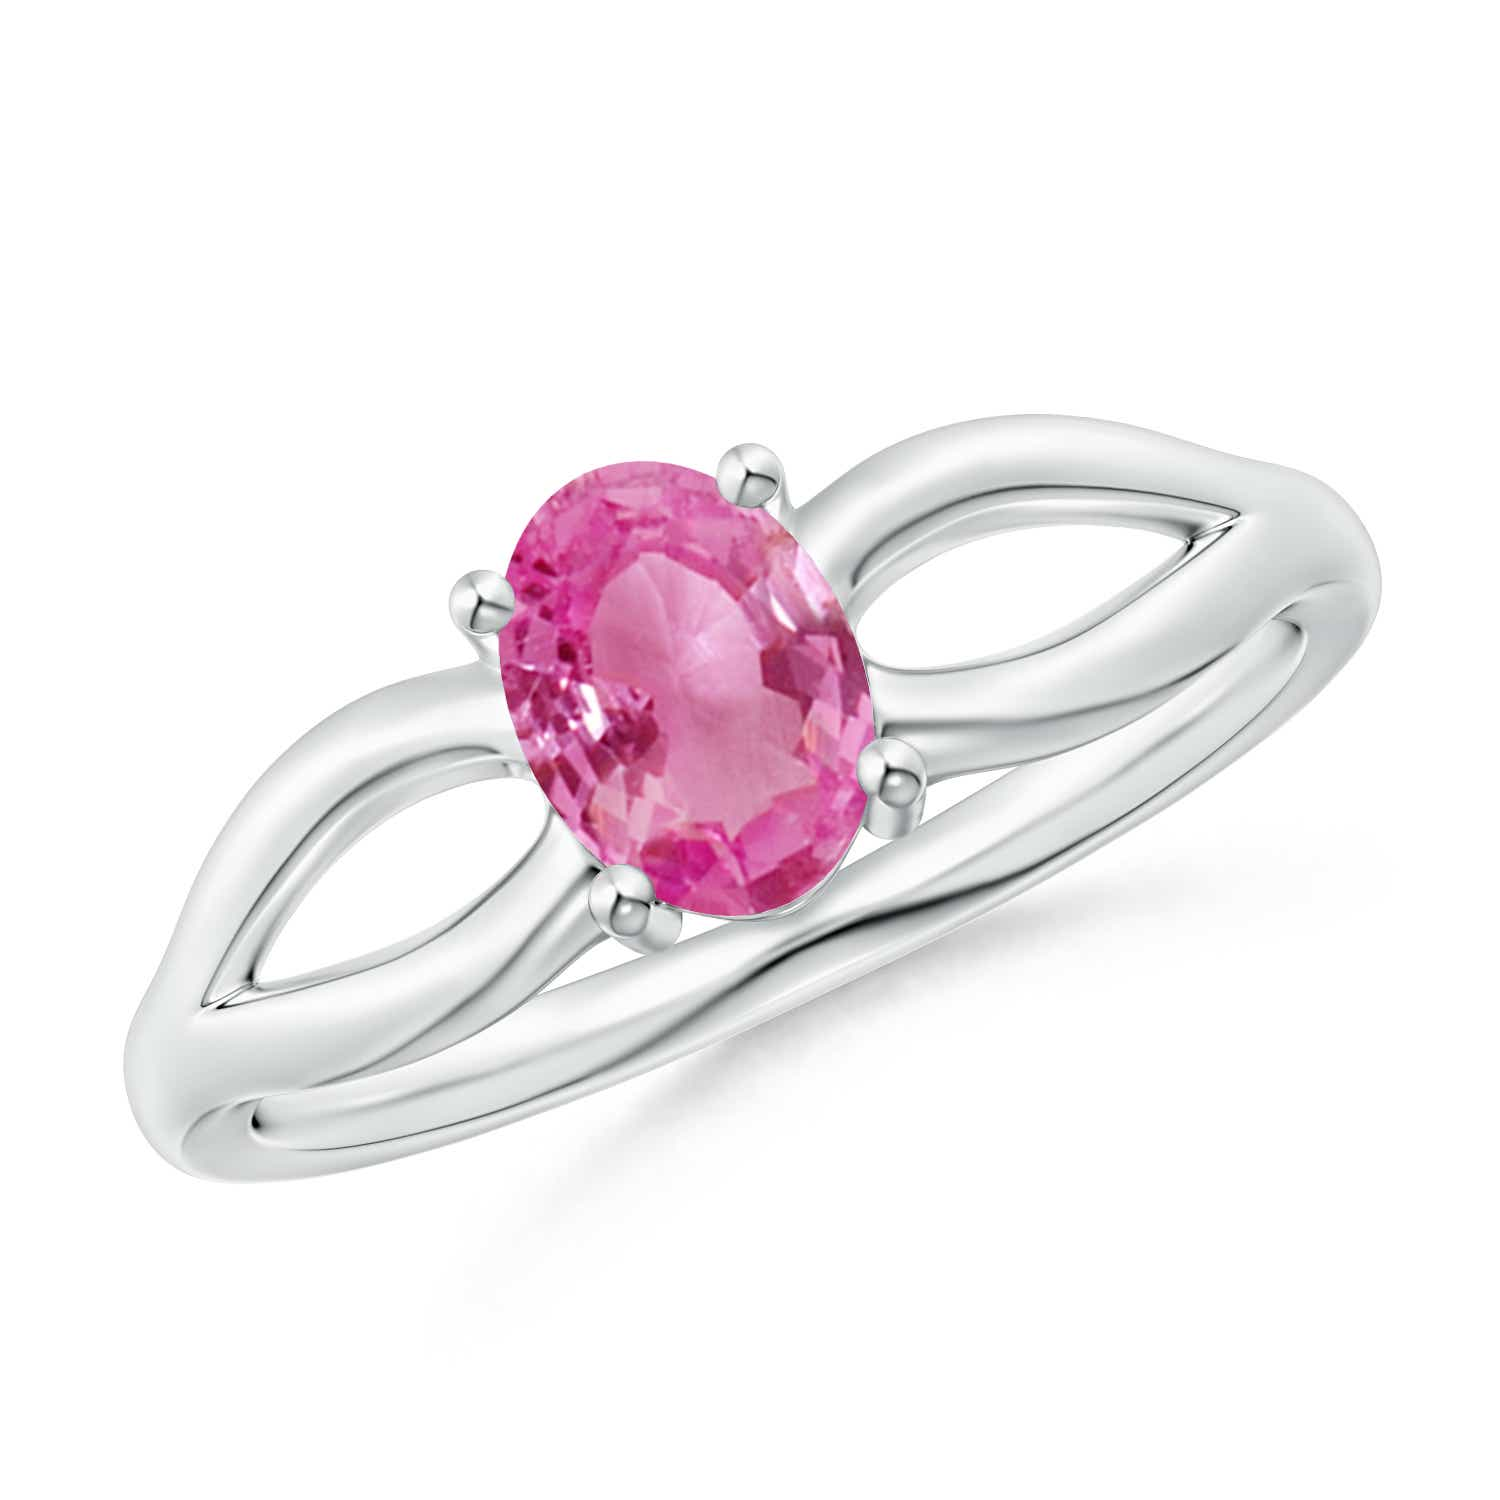 Angara Prong Set Round Pink Sapphire Ring in Rose Gold s4i5hGswc